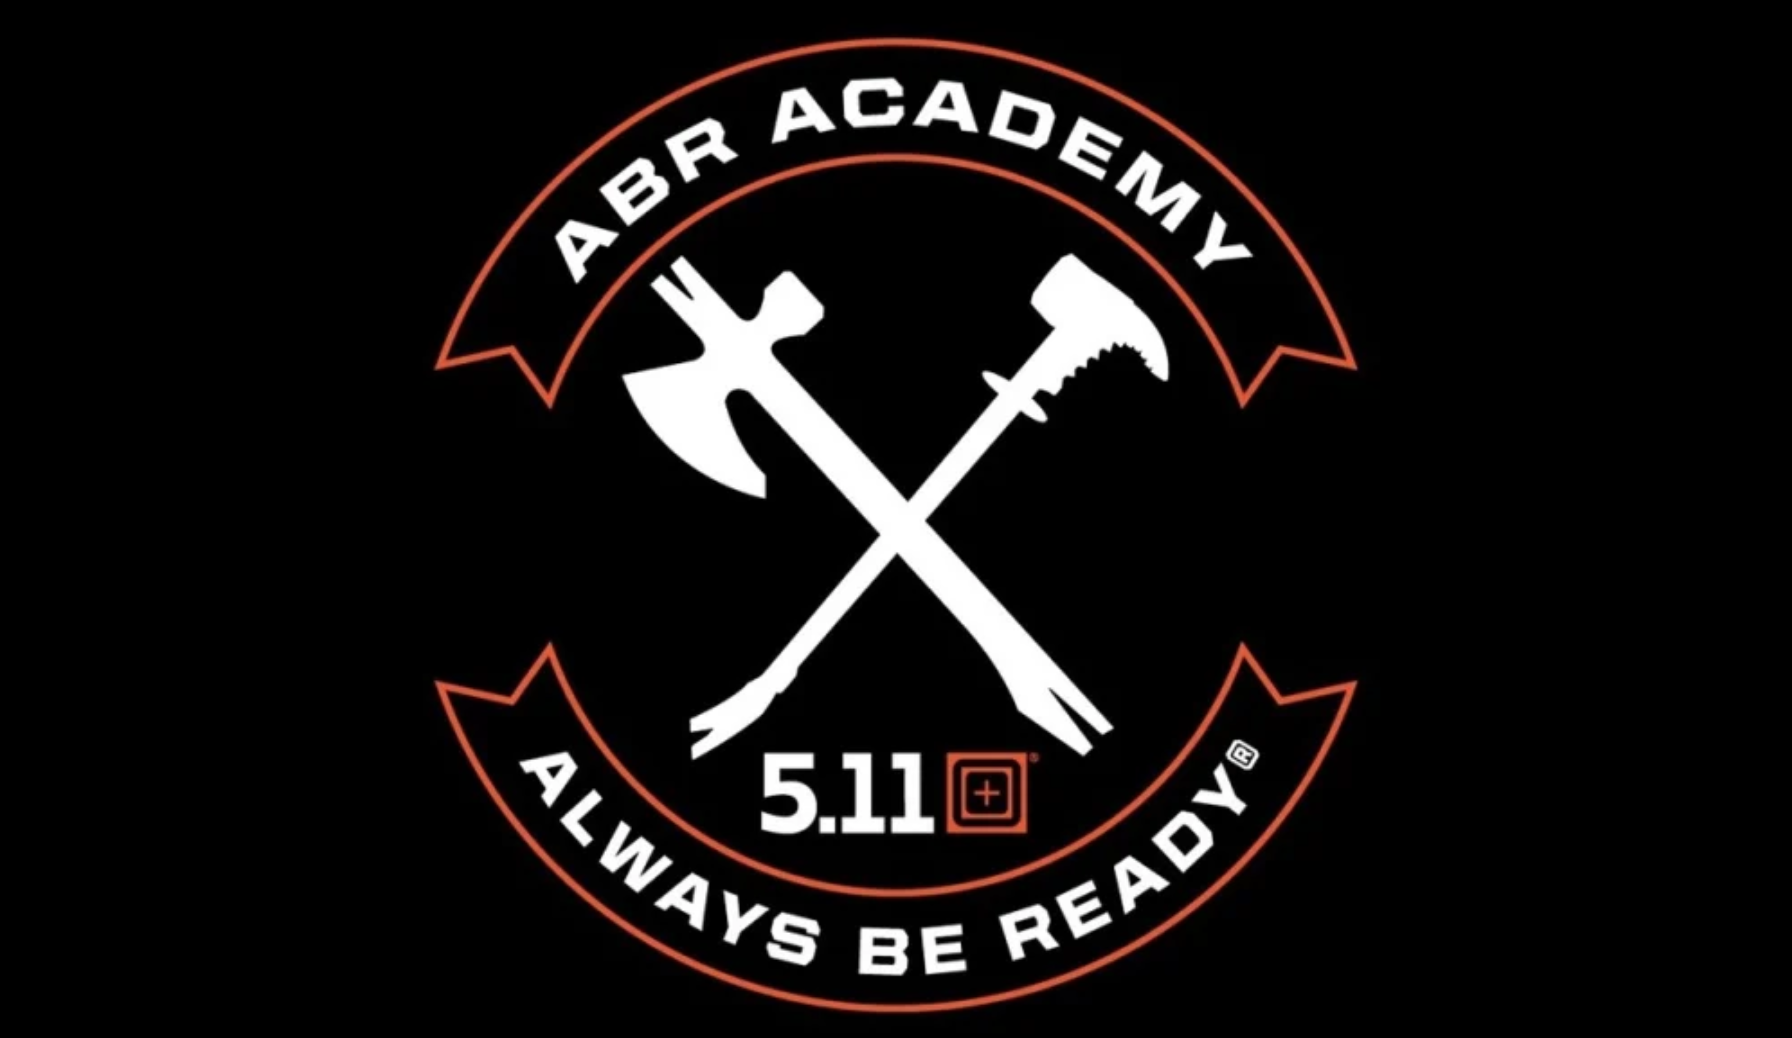 5.11 Launches '5.11 ABR Academy' at Company-Owned Retail Stores